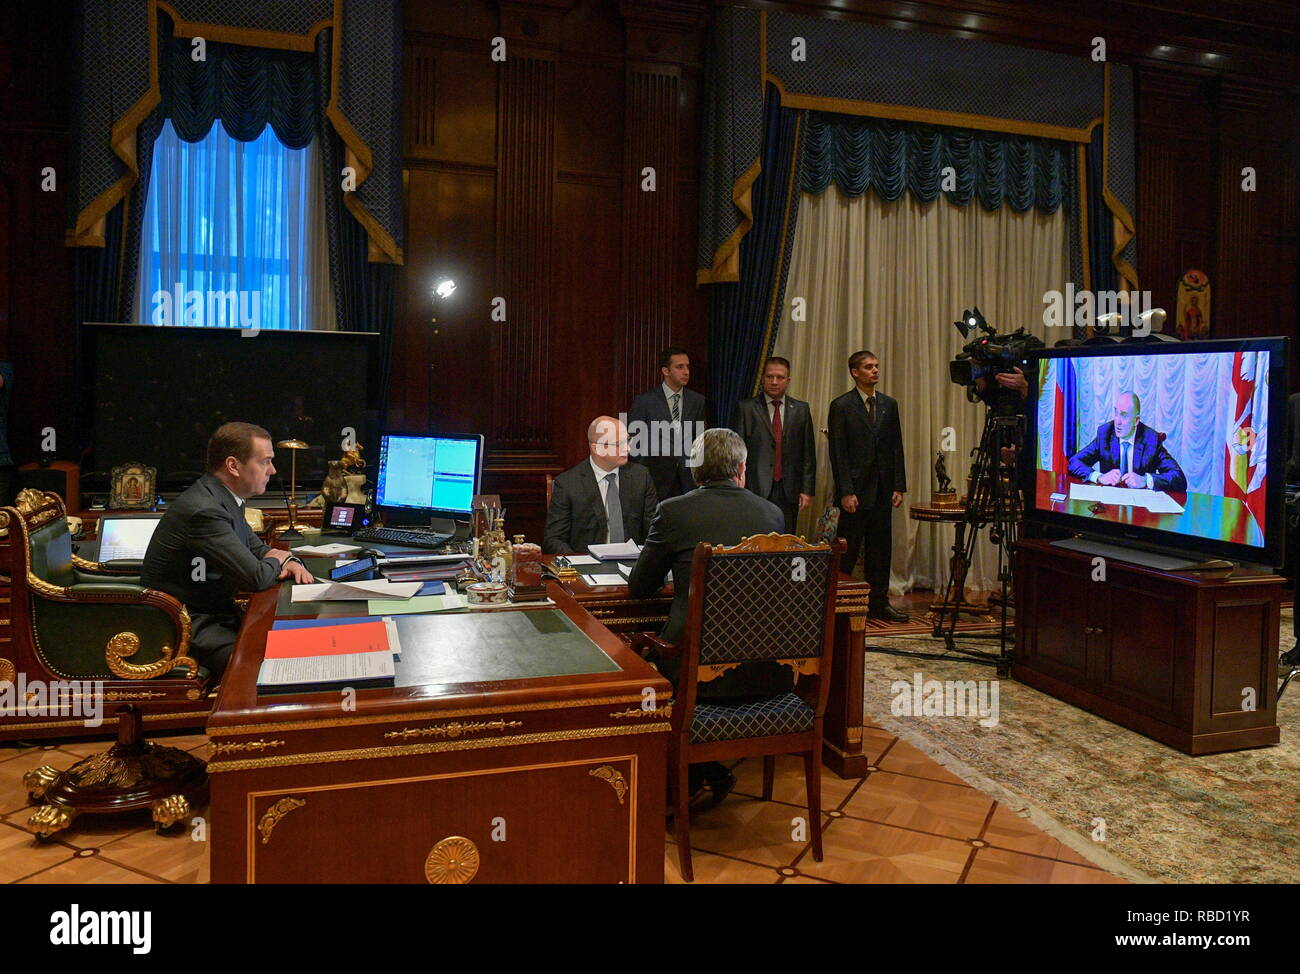 Russia. 09th Jan, 2019. MOSCOW REGION, RUSSIA - JANUARY 9, 2019: Russia's Prime Minister Dmitry Medvedev (L) during a video conference meeting on the recovery operation after the Magnitogorsk domestic gas explosion at Gorki residence. Chelyabinsk Region Governor Boris Dubrovsky takes part in the meeting via a video link. Alexander Astafyev/Russian Government Press Office/TASS Credit: ITAR-TASS News Agency/Alamy Live News - Stock Image